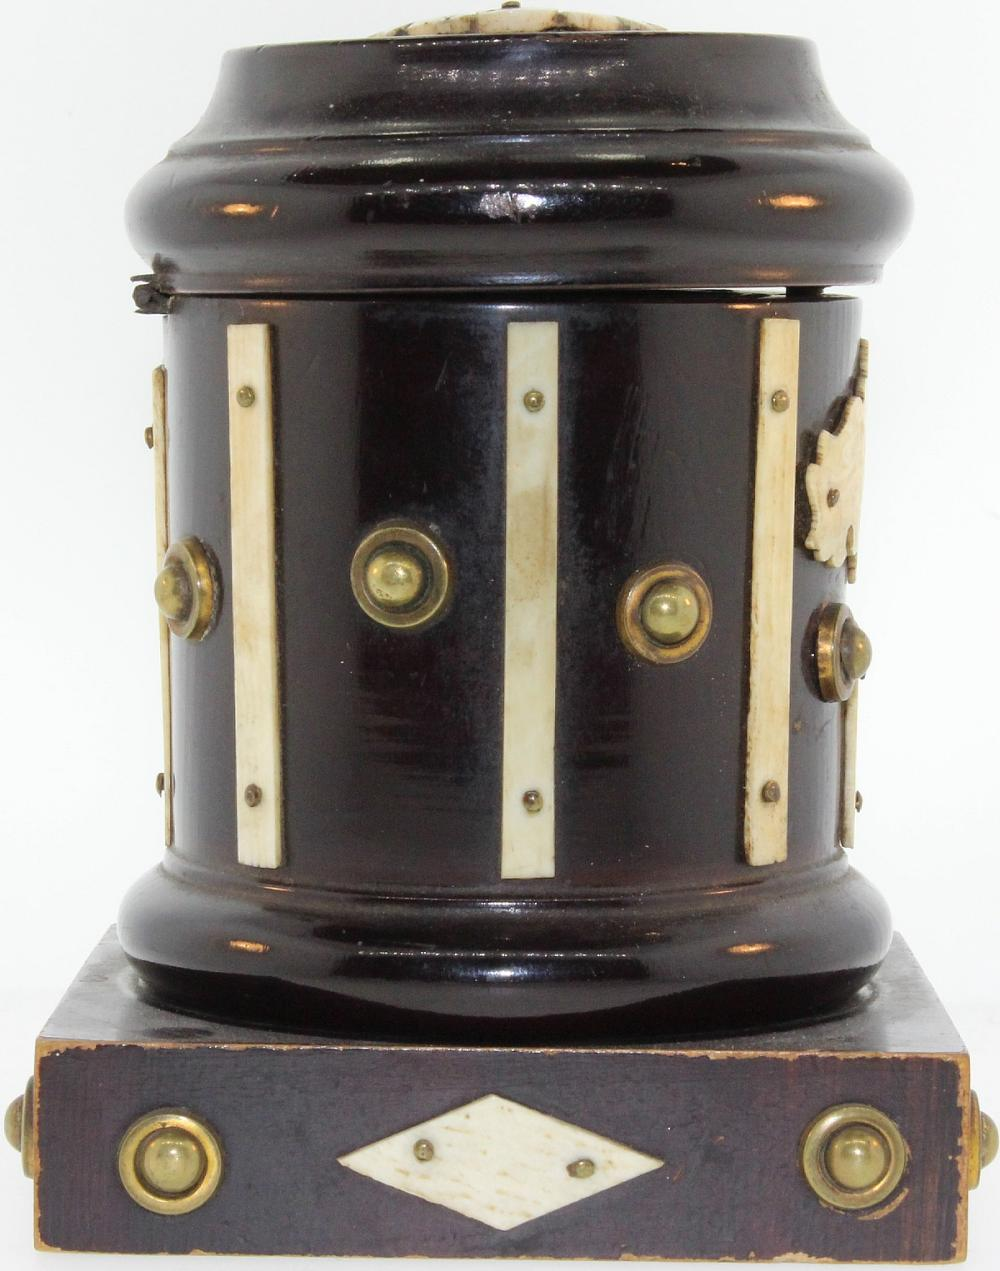 Antique Money Box in Ebonised wood with Ivory adornments